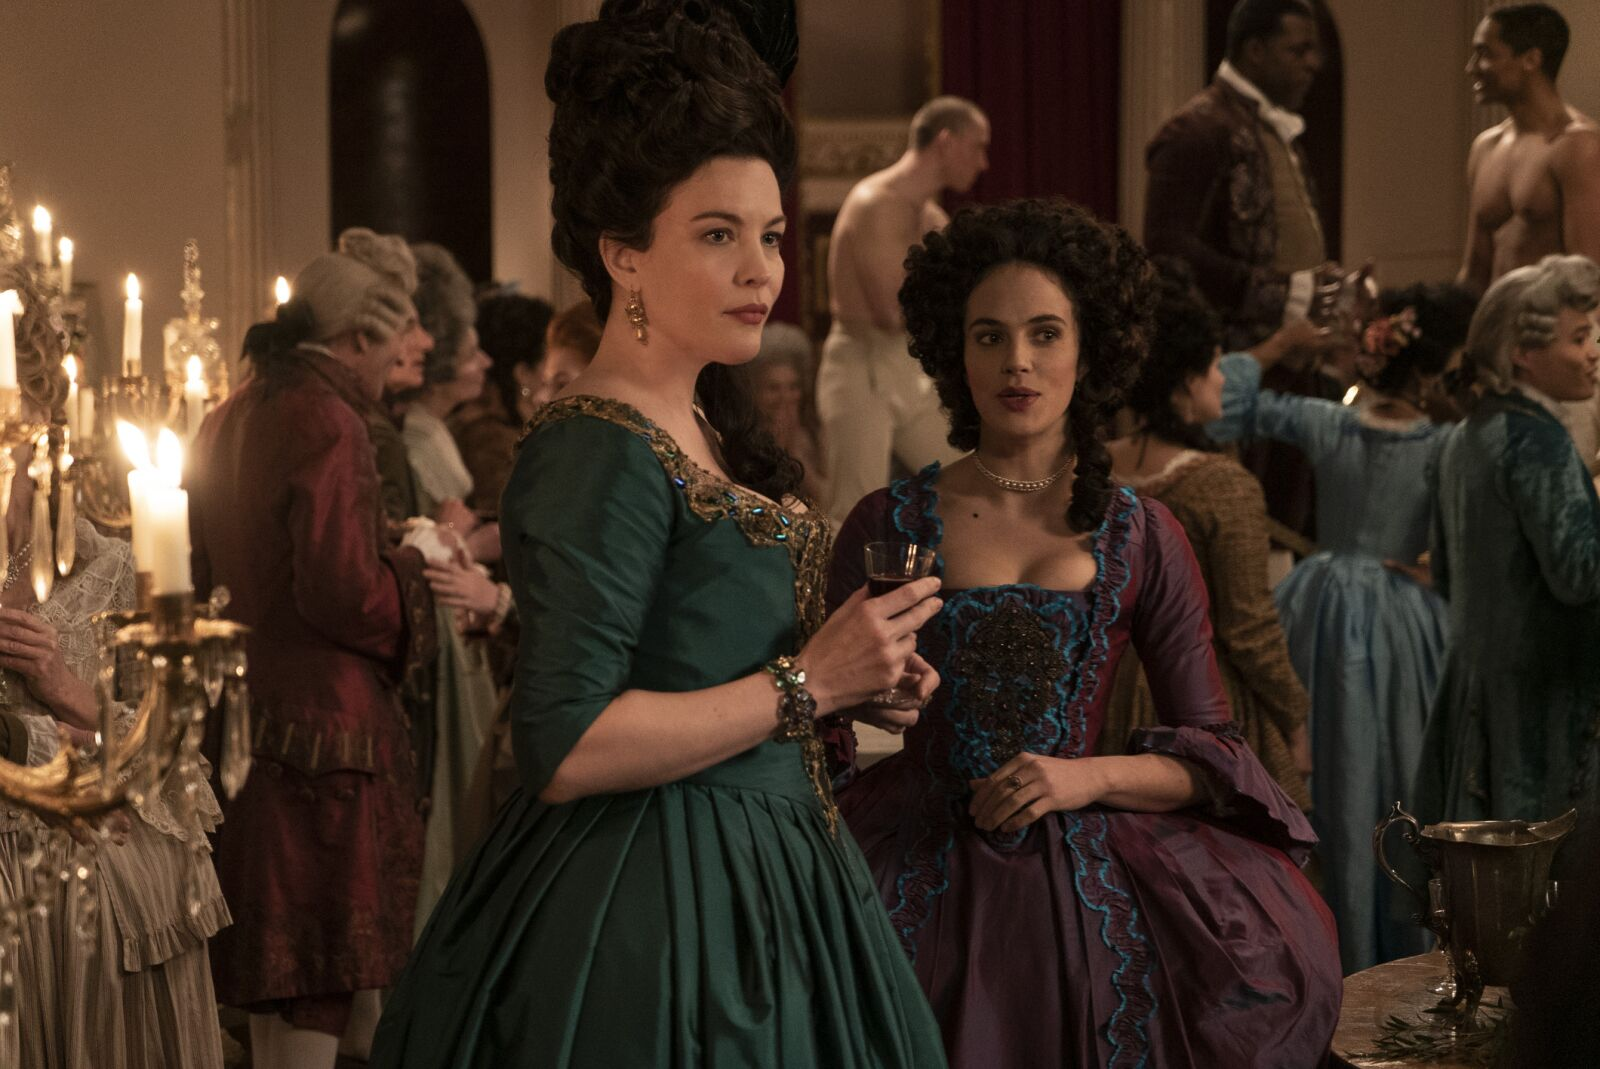 Harlots Season 3 Finale: What does this mean for the show's future?